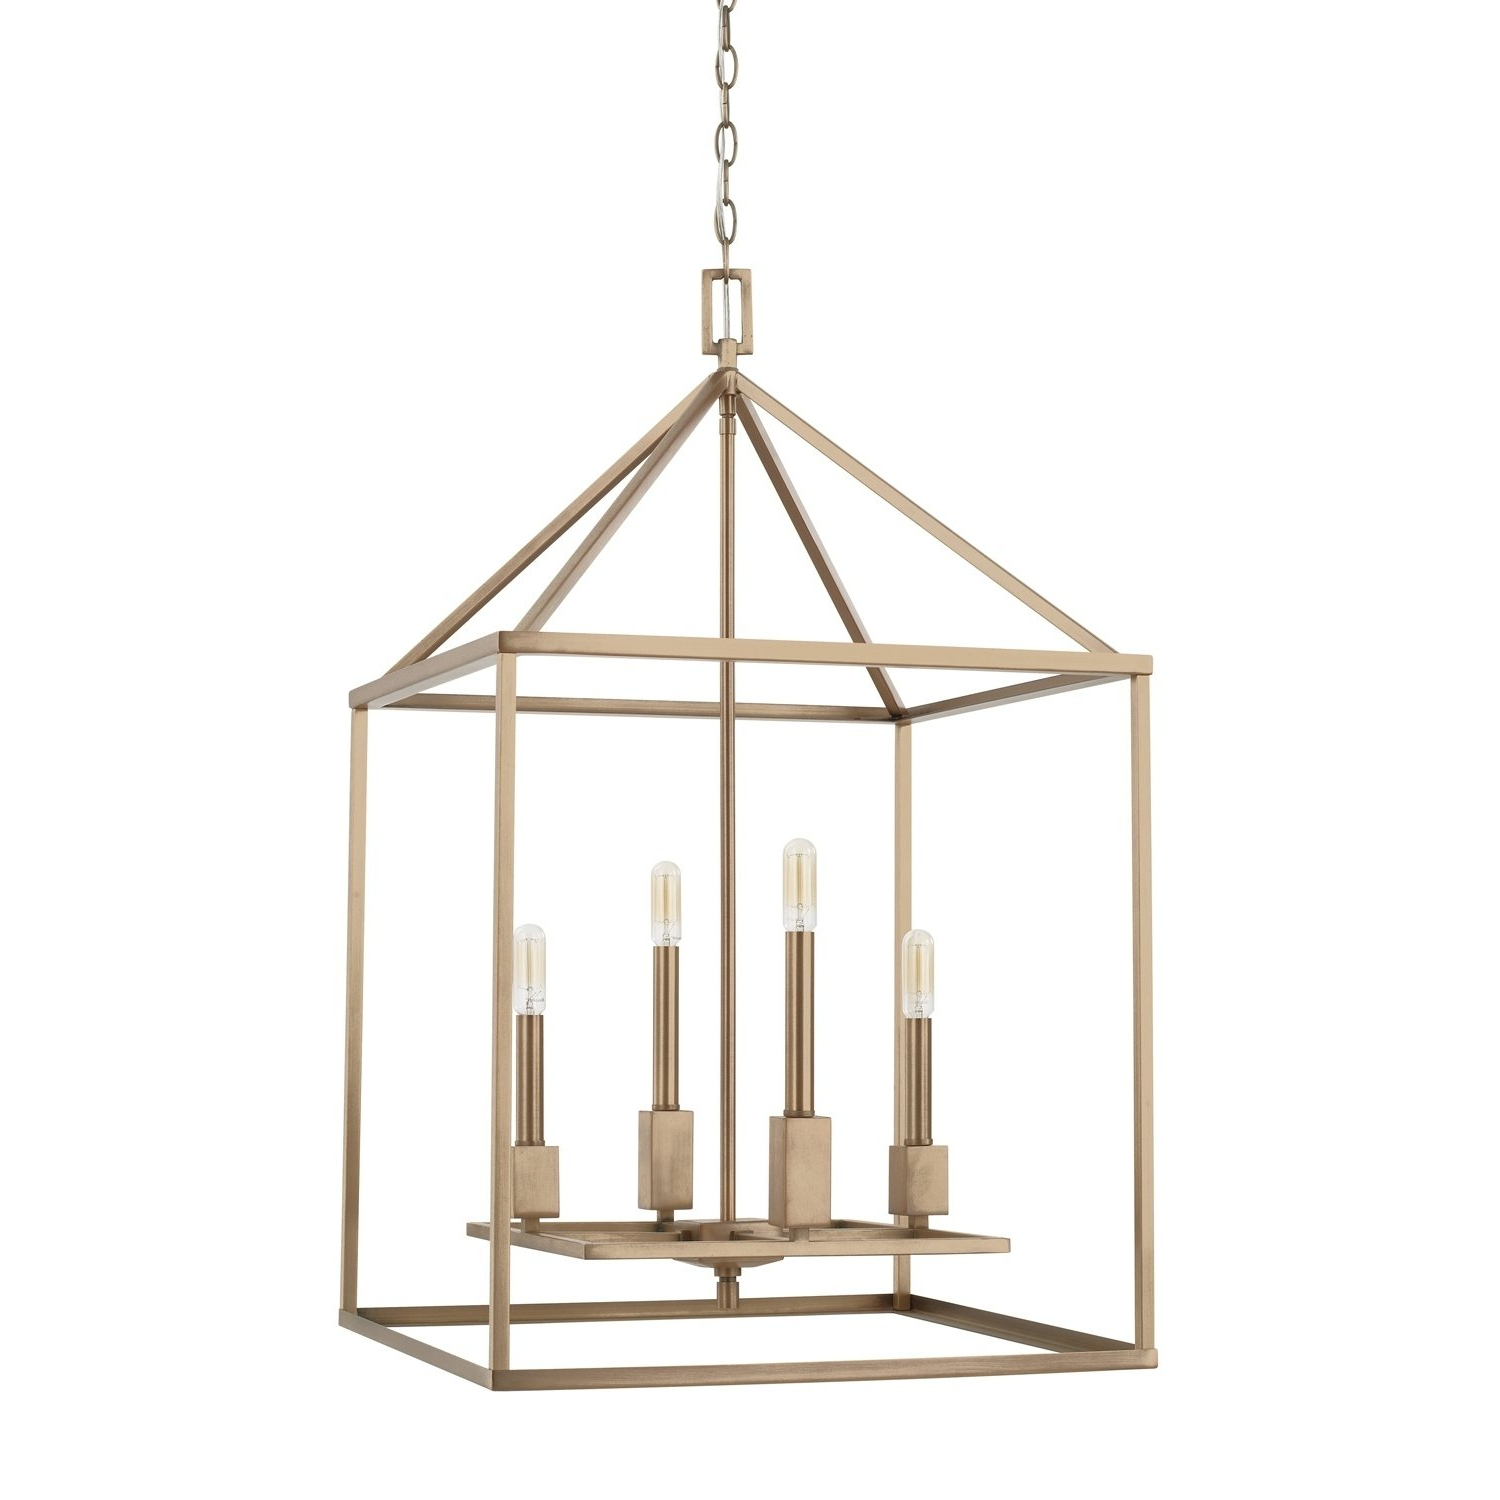 Capital Lyra Collection 4 Light Aged Brass Foyer Fixture For 2019 Freeburg 4 Light Lantern Square / Rectangle Pendants (View 2 of 20)